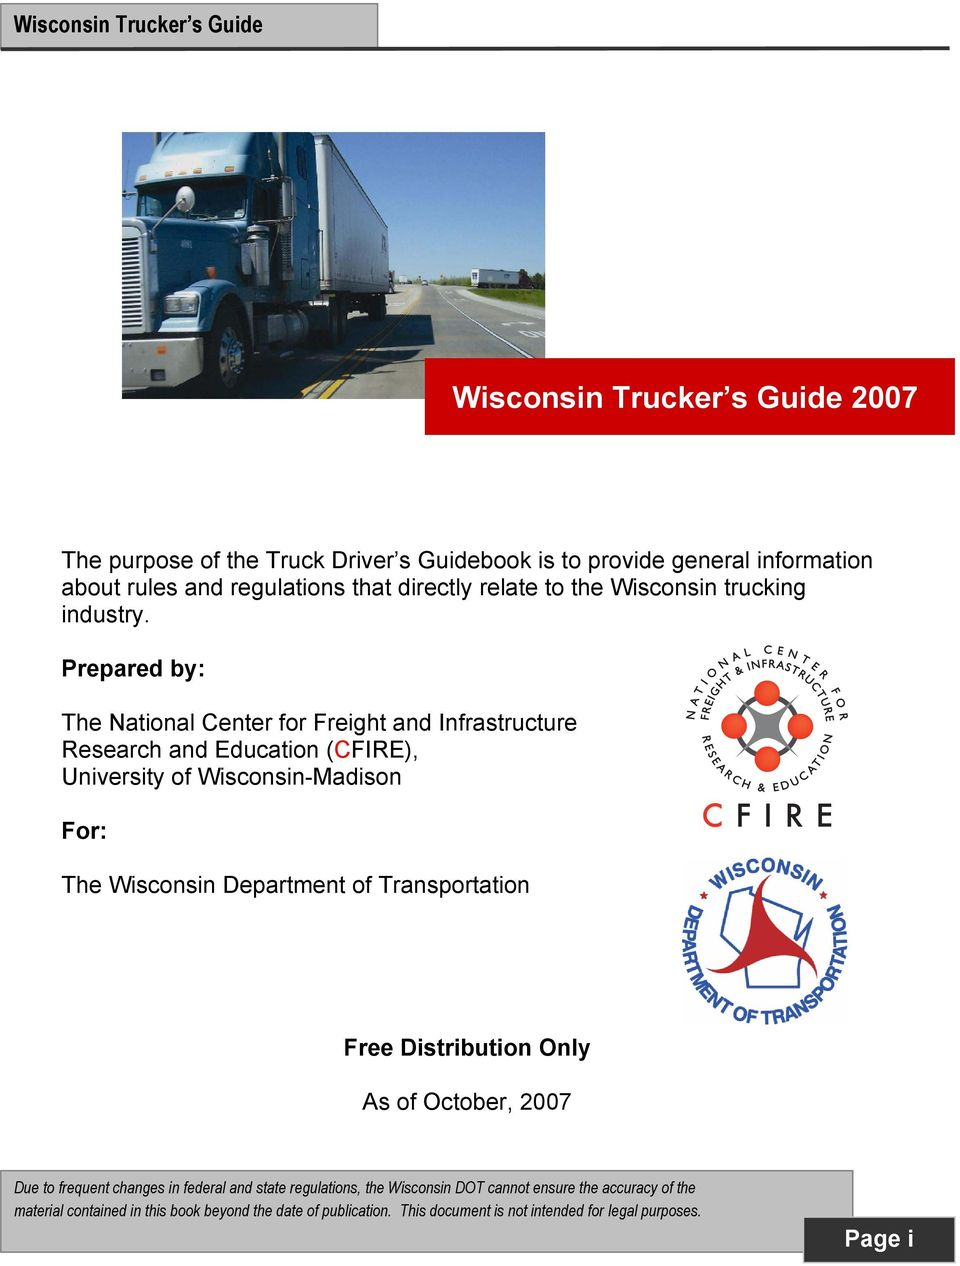 Prepared by: The National Center for Freight and Infrastructure Research and Education (CFIRE),